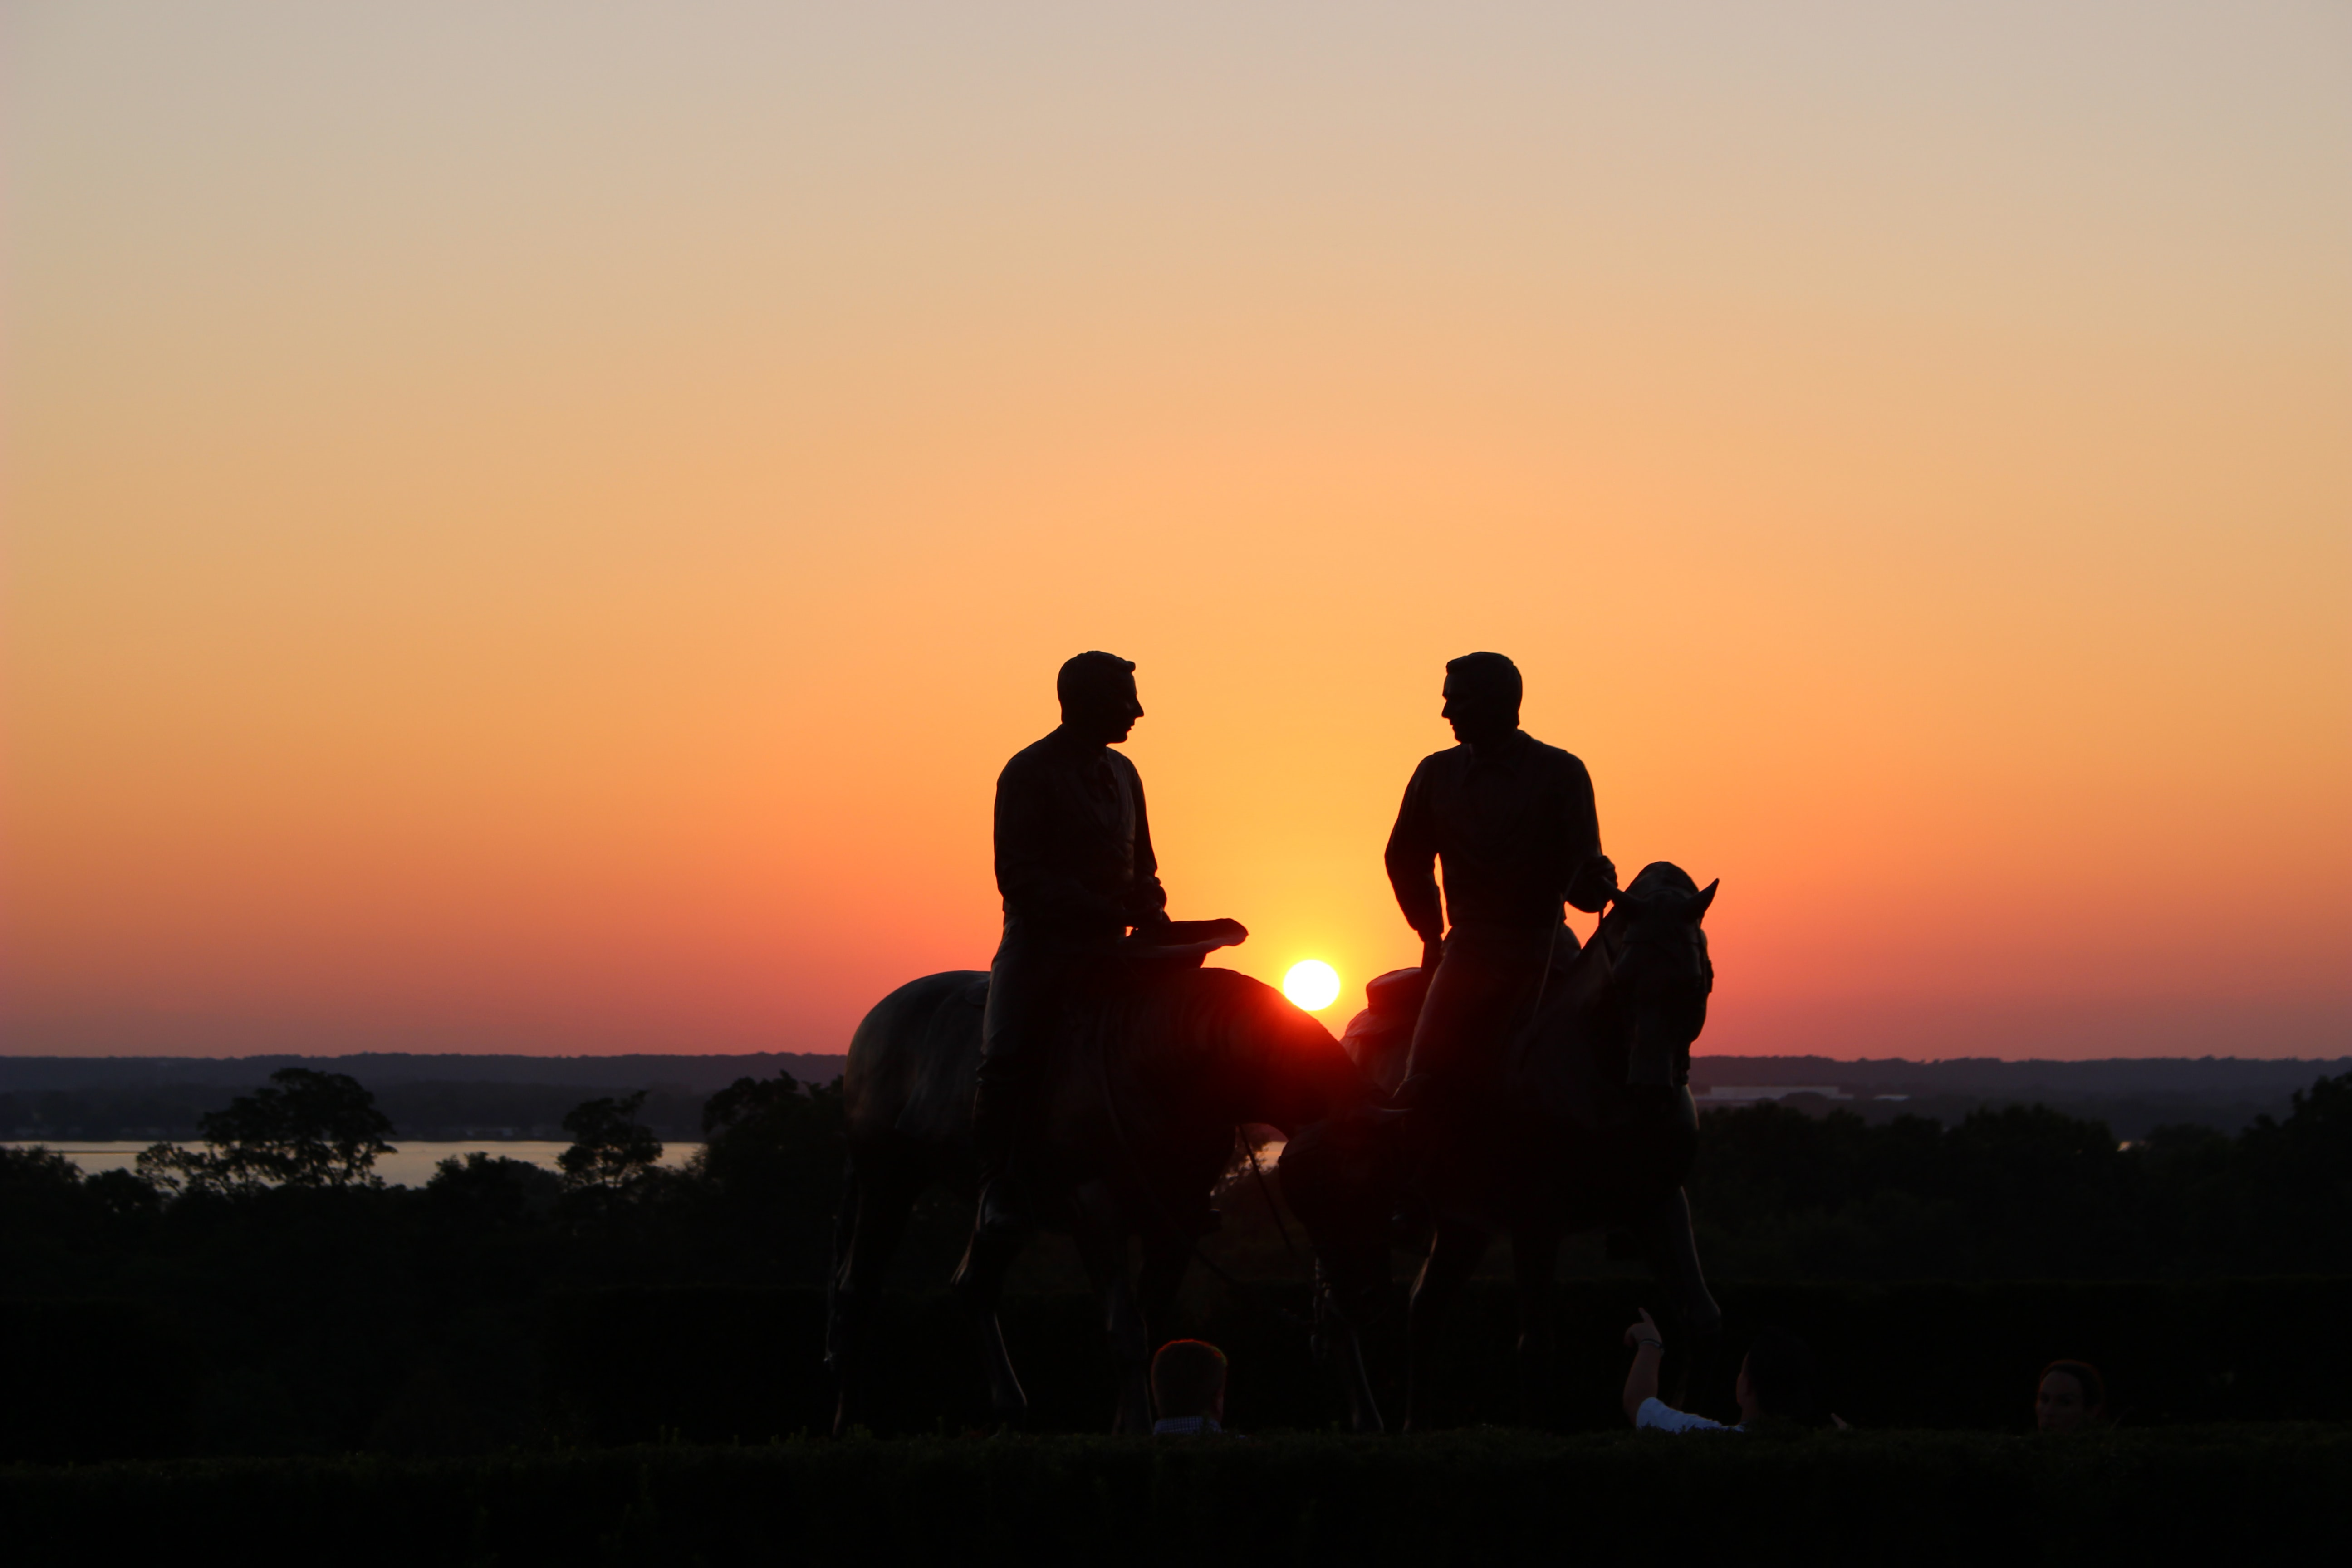 silhouette of two person riding on horse during golden hour